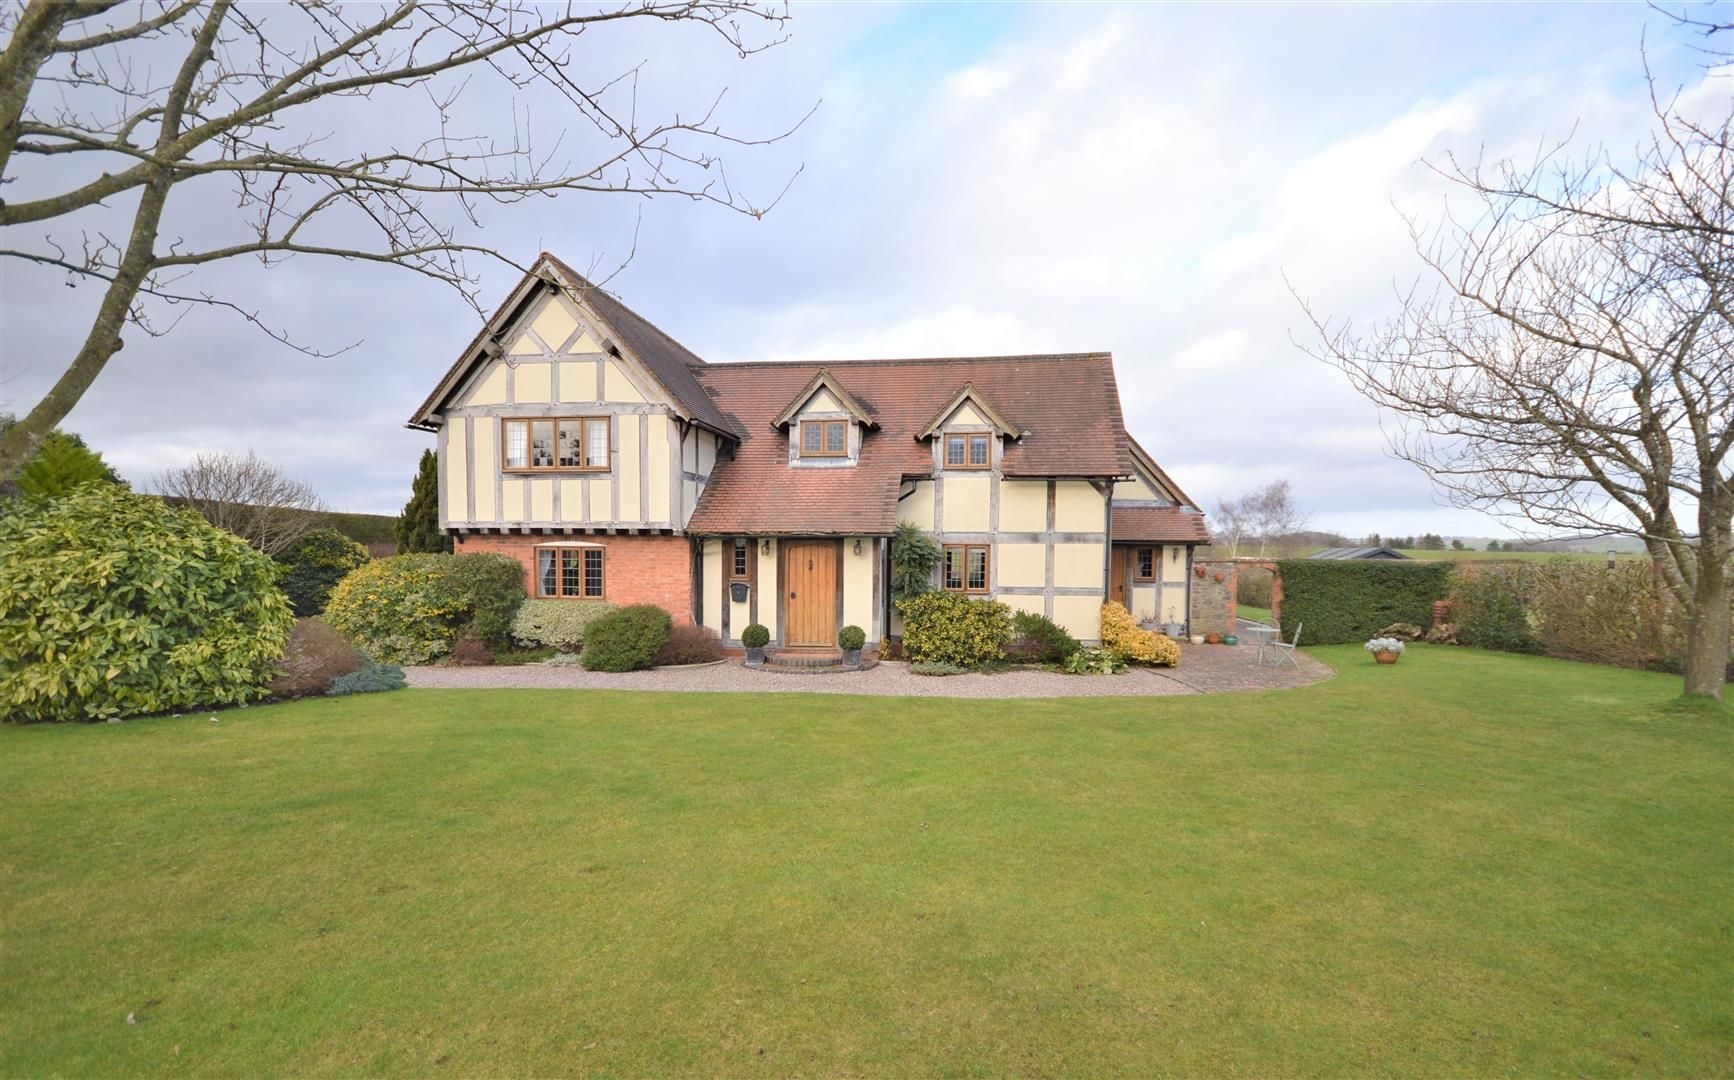 4 bed detached for sale in Marden 30